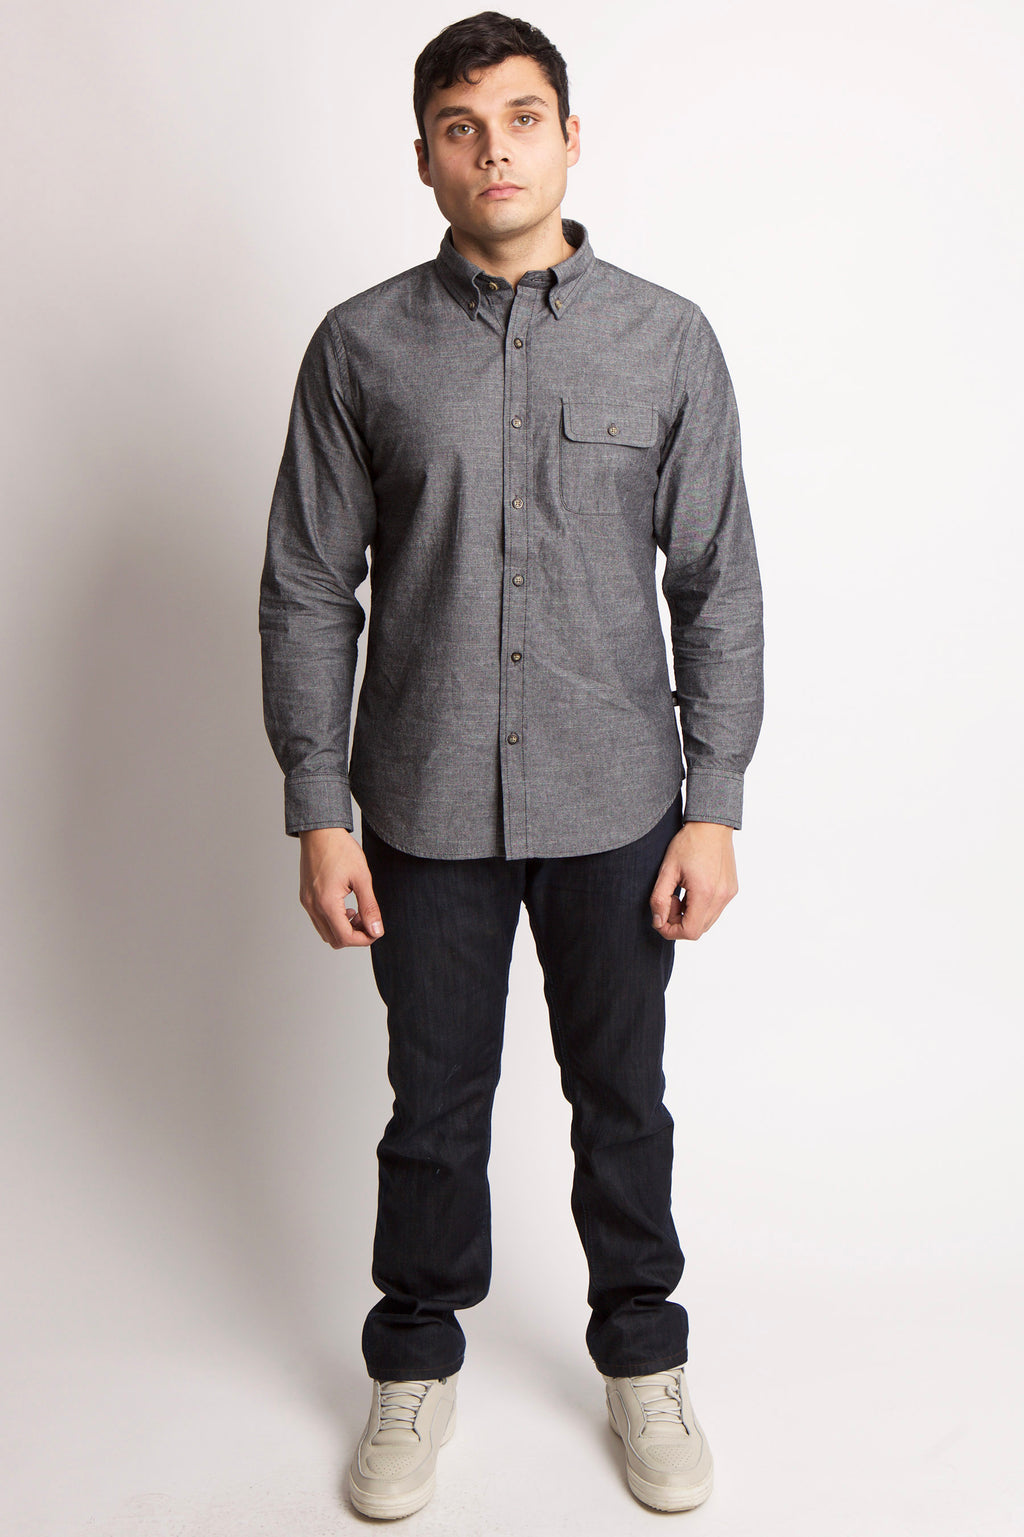 DURHAM OXFORD SHIRT - BROOKLYN INDUSTRIES